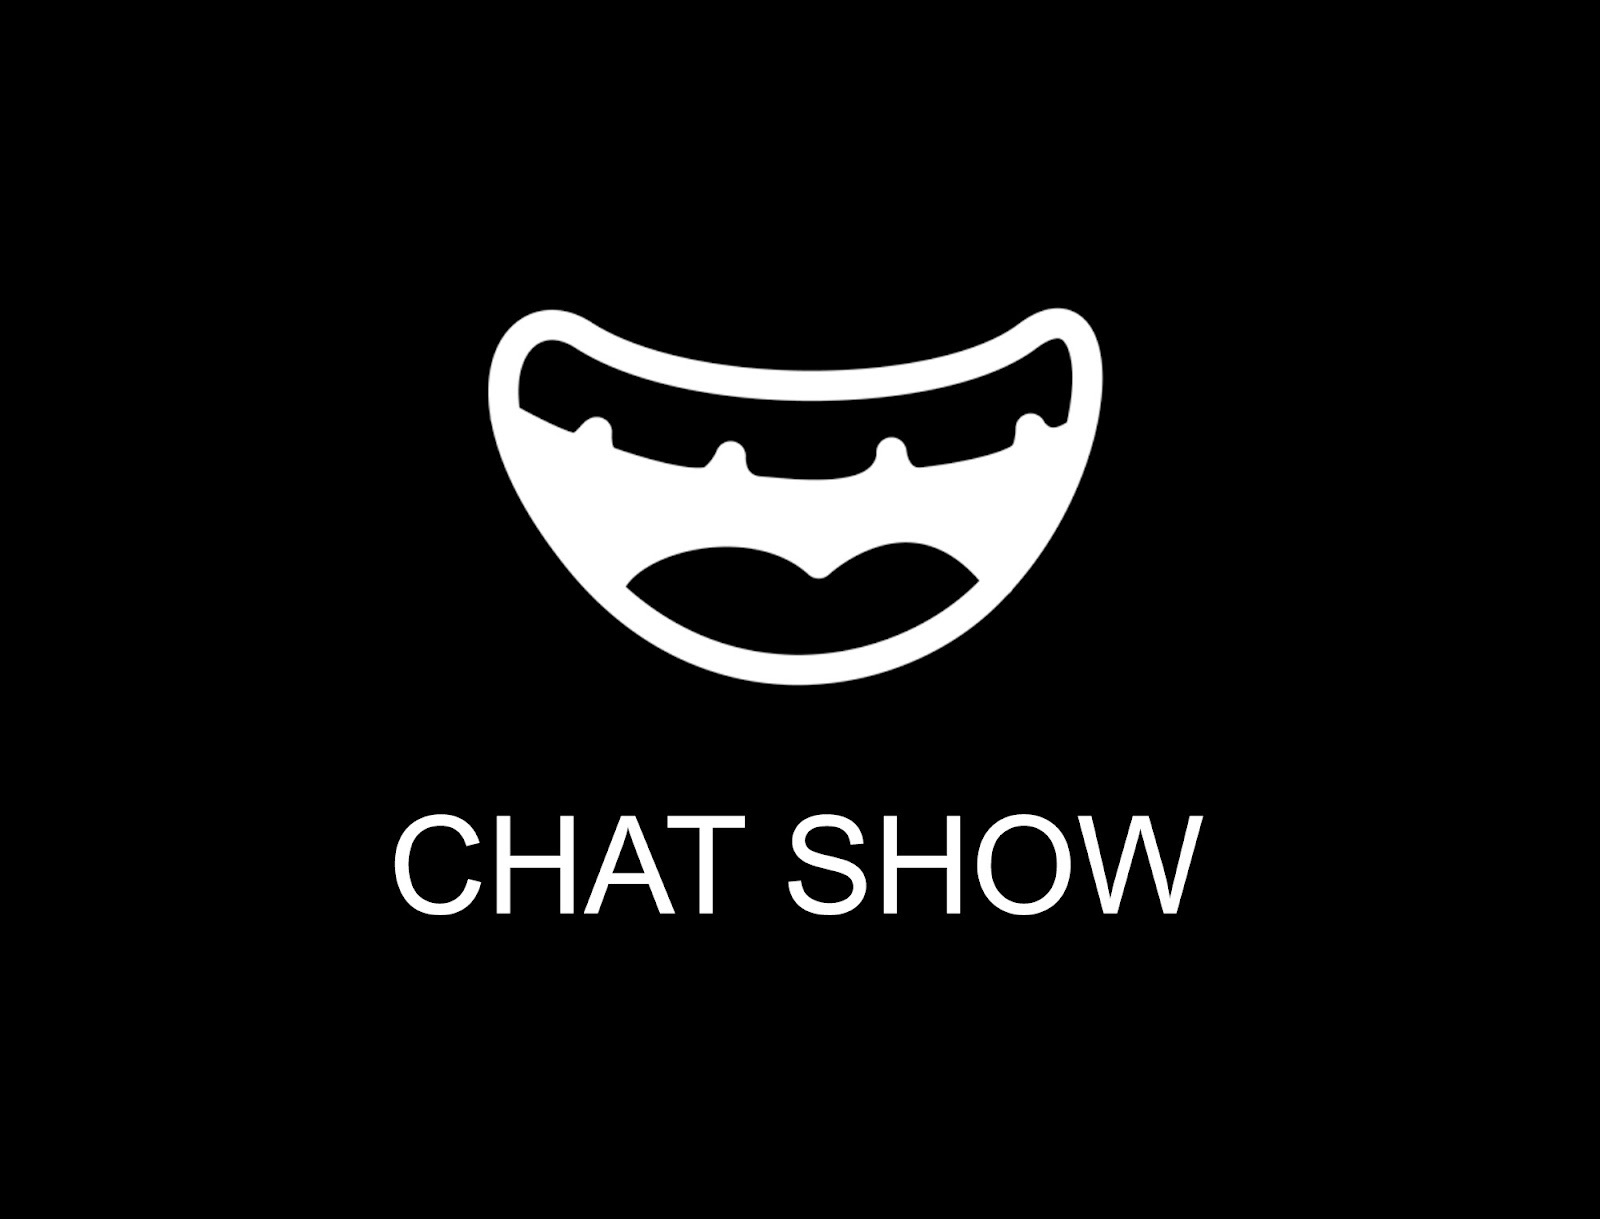 Christopher Tym (Holloran): Chatshow.